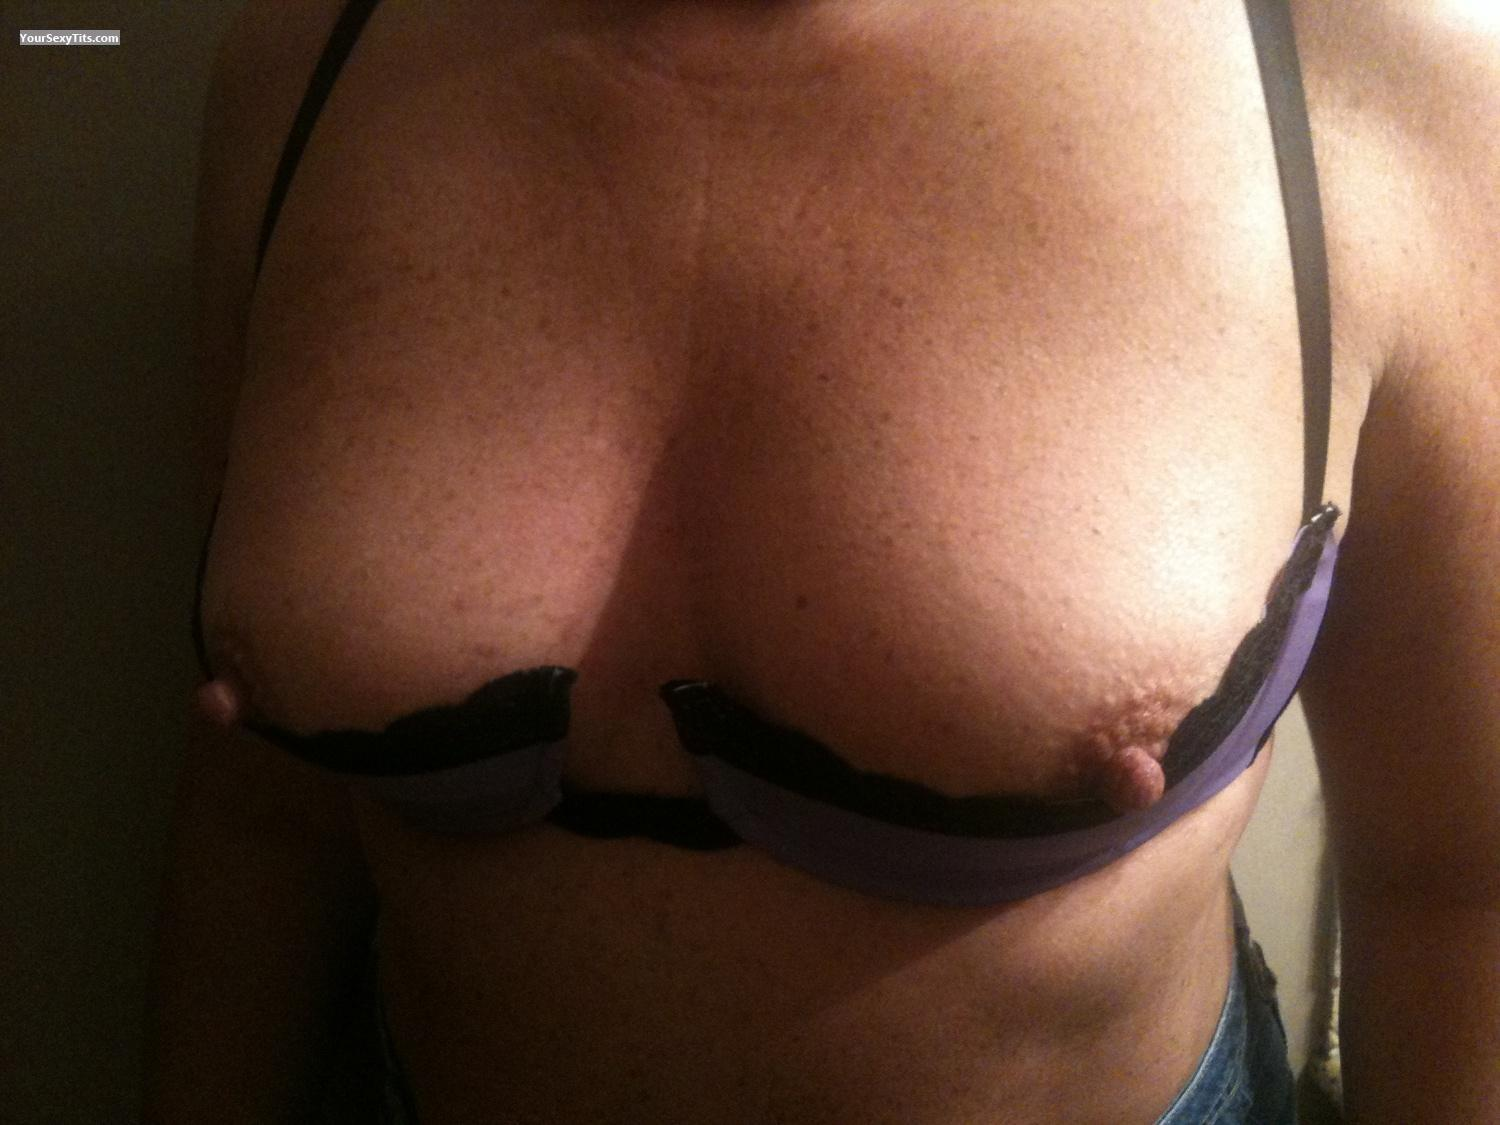 Tit Flash: Small Tits By IPhone - Nips44 from United States